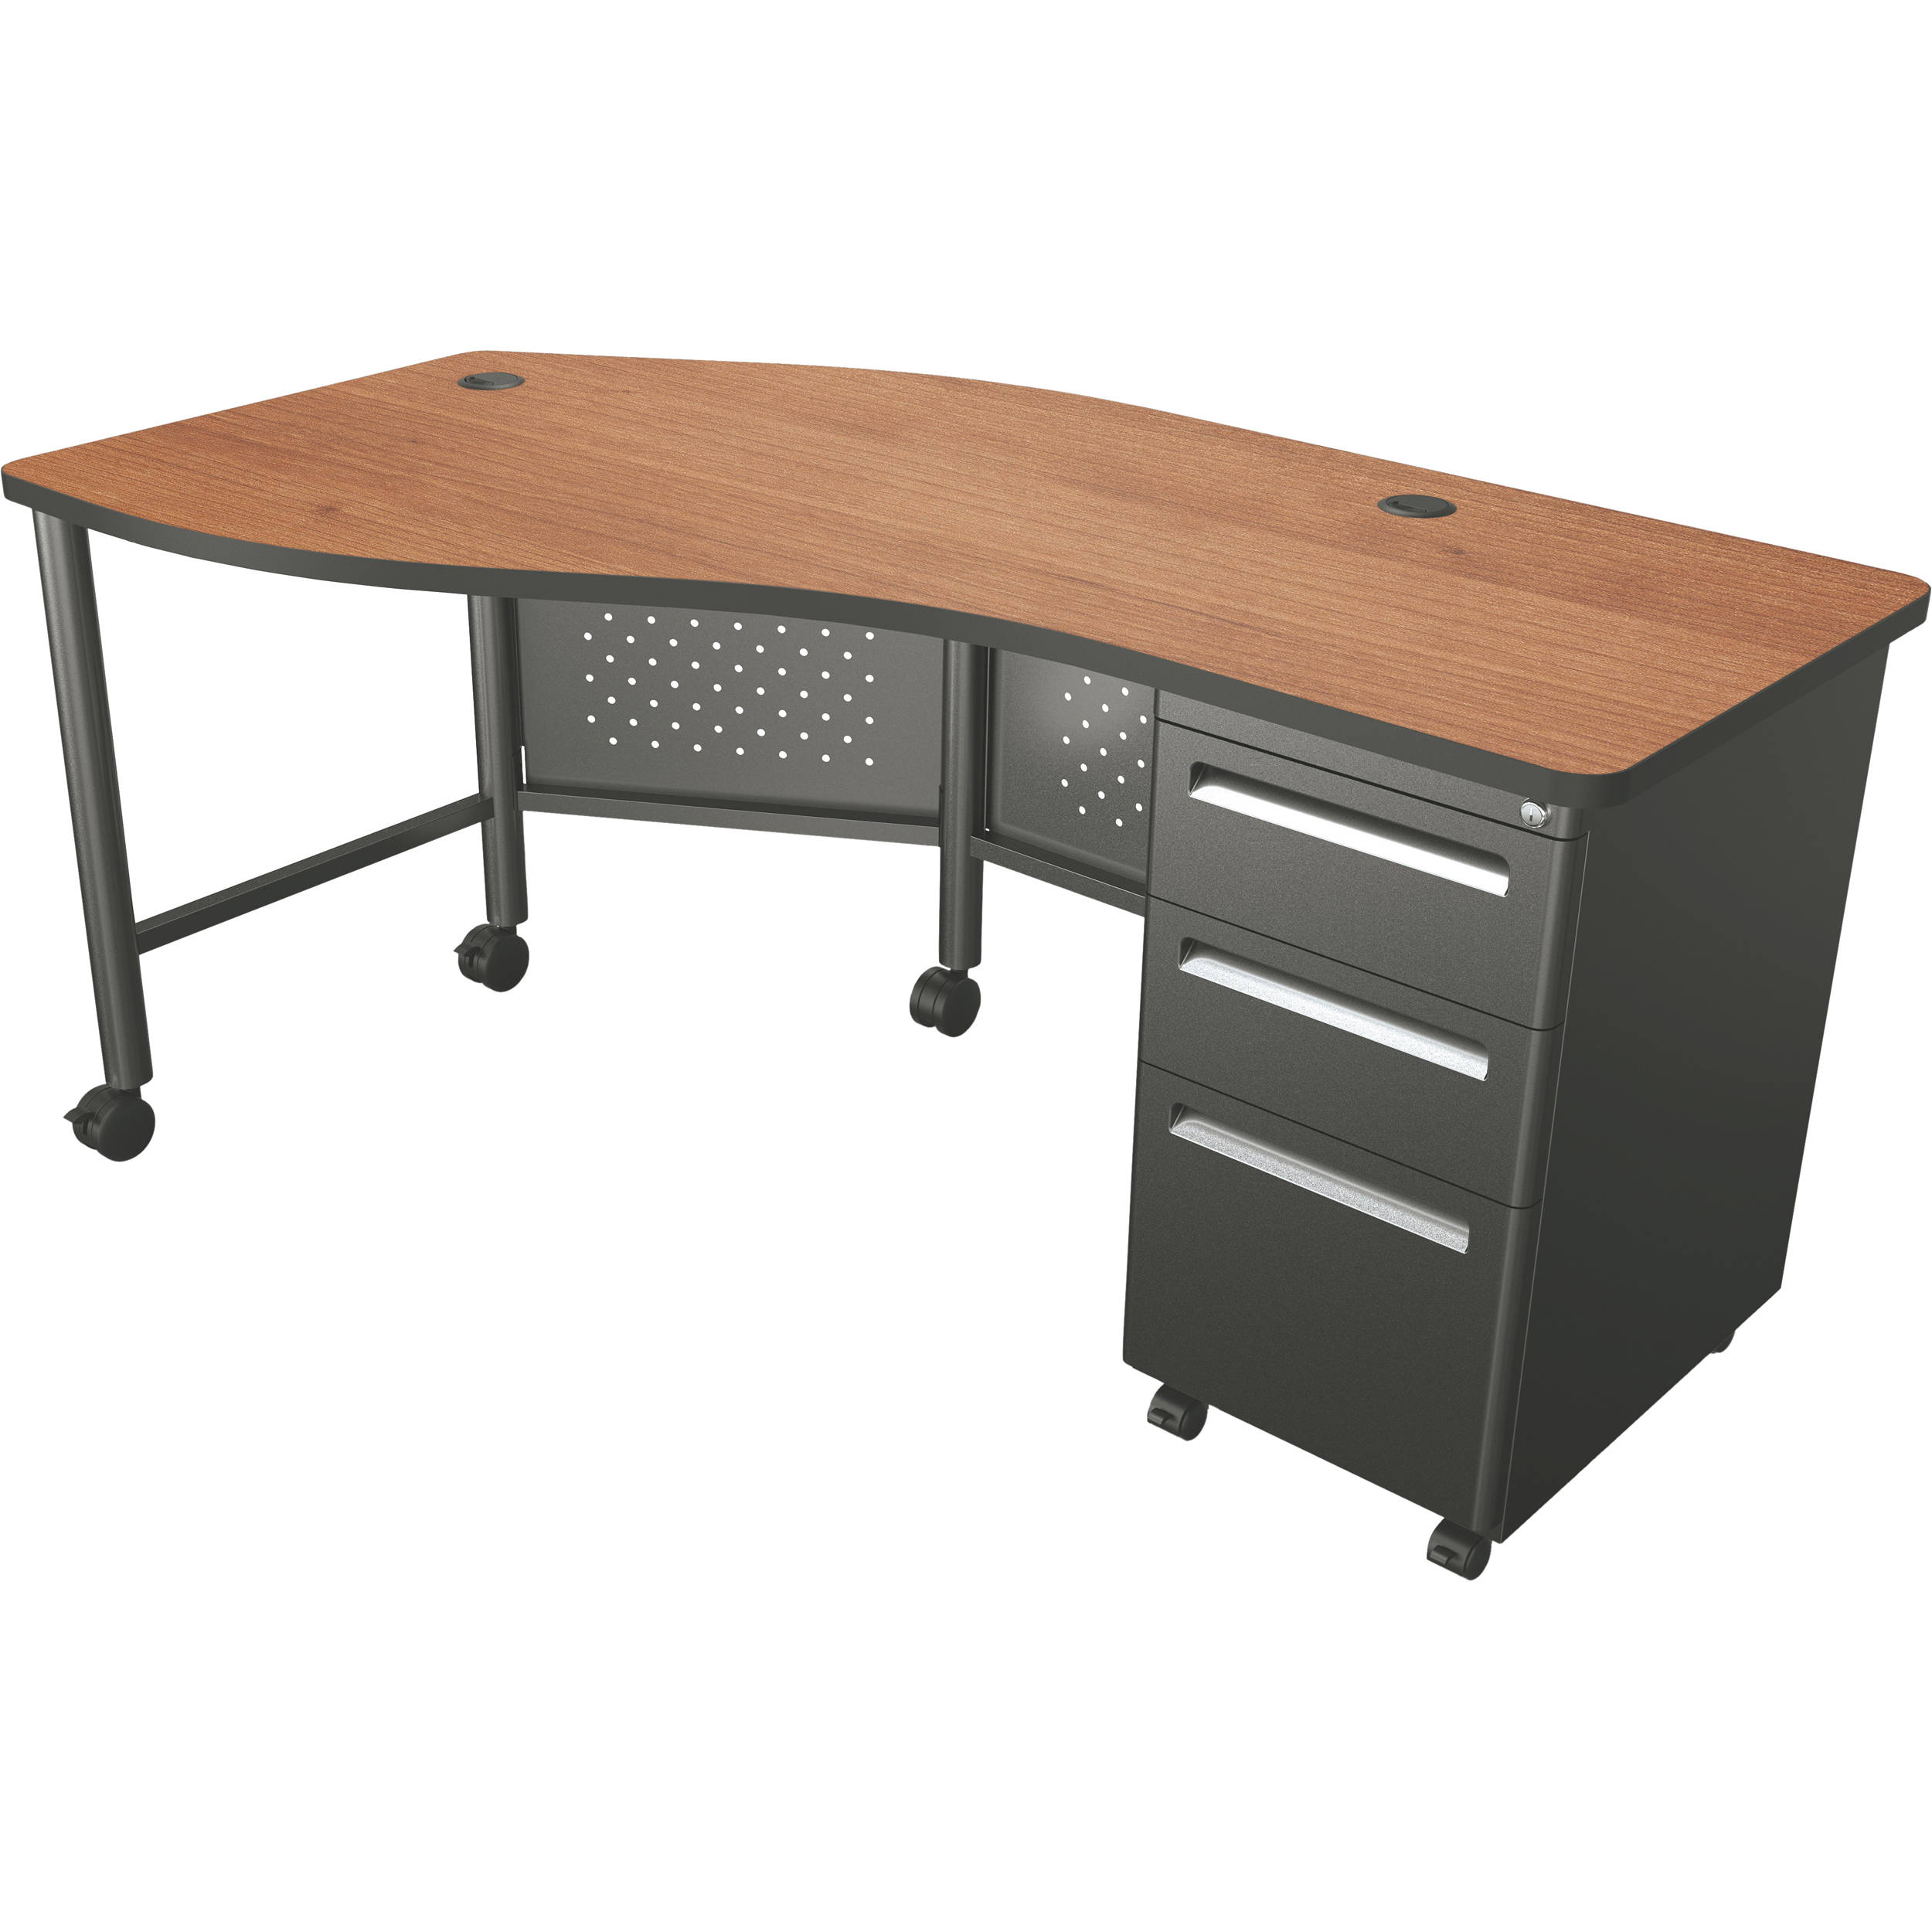 Balt Instructor Teacher's Desk Ii (cherry) 90590 B&h Photo. Table Cover With Logo. Sit Stand Office Desk. Unfinished Table Top. Best Office Desk Setup. Chair Side Tables. Desk Lock. Sears Workbench With Drawers. Children's Desk With Drawers